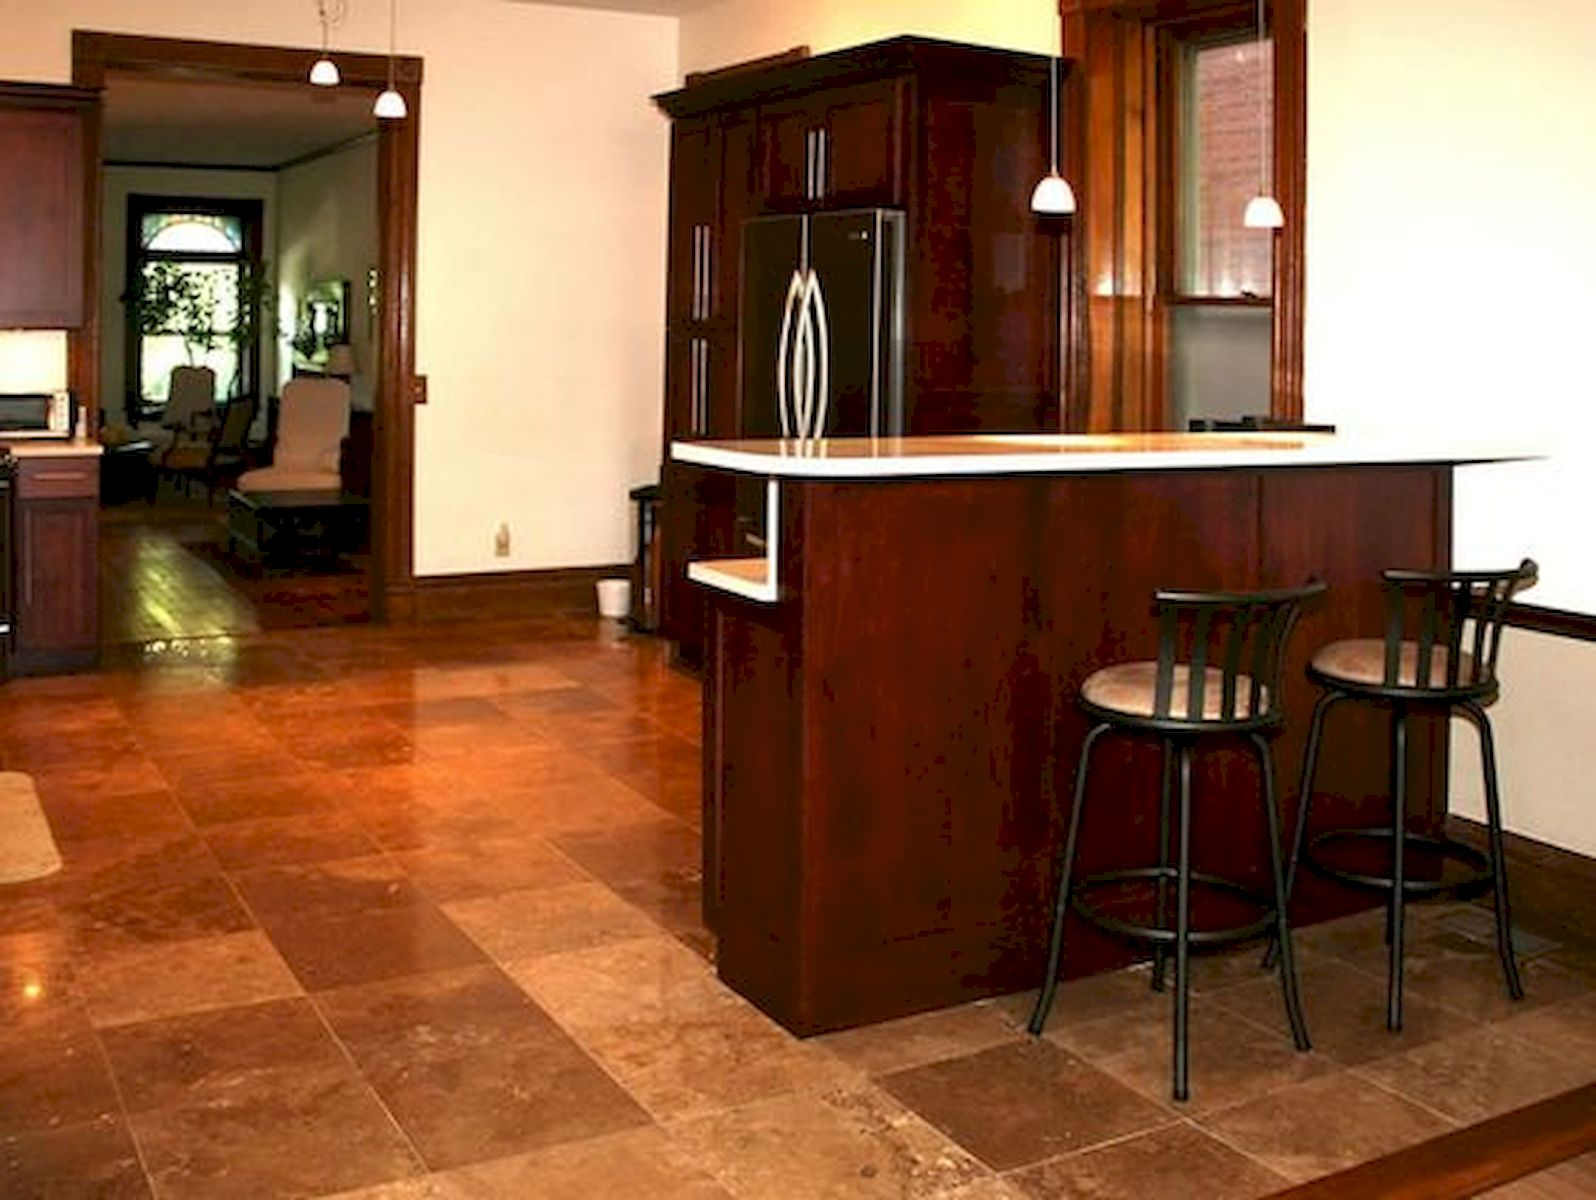 30 Best Kitchen Floor Tile Design Ideas With Concrete Floor Ideas (25)